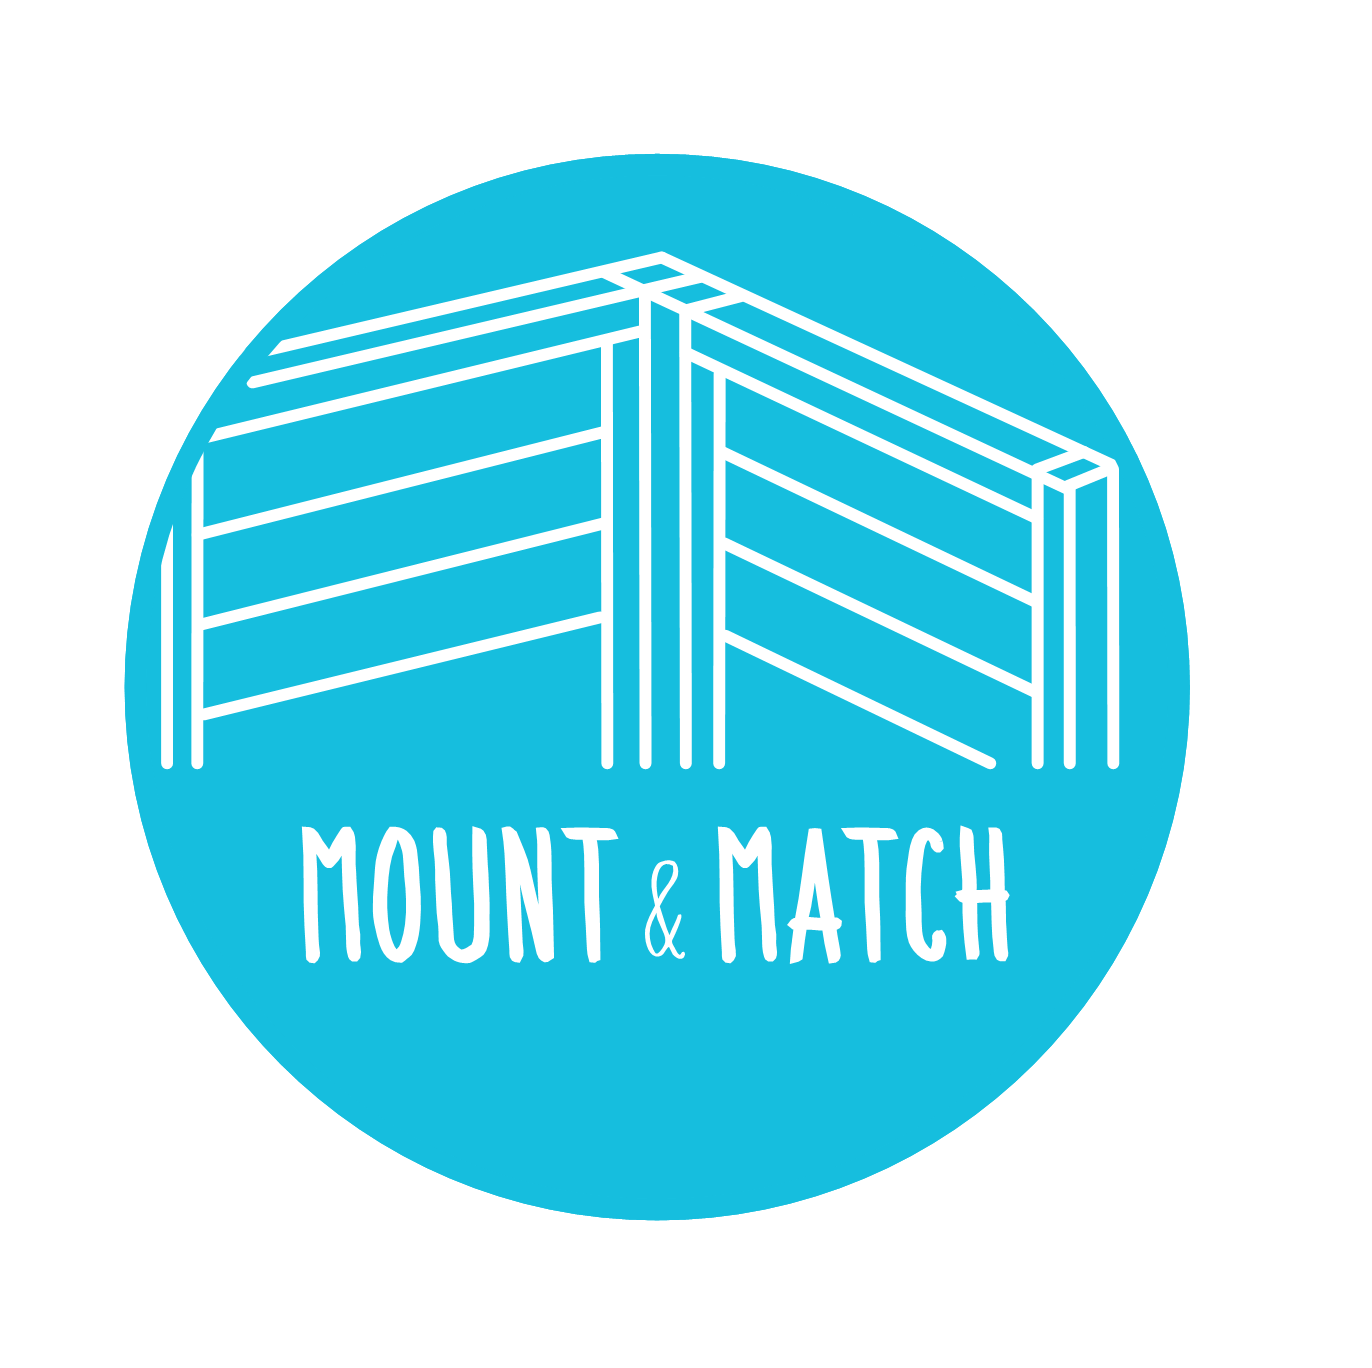 mount&match 19 mm